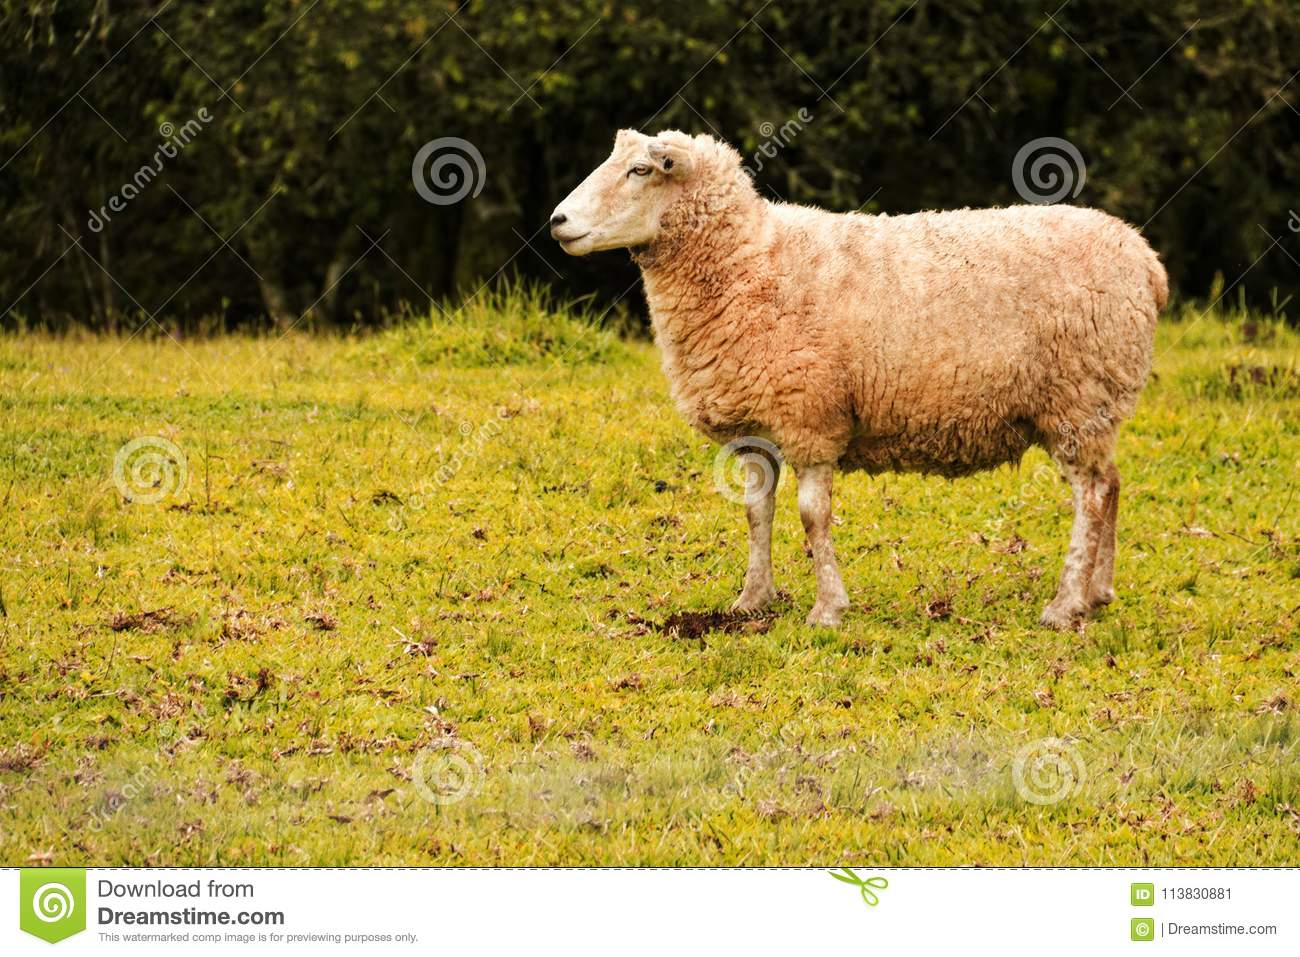 Isolated Sheep On A Green Pasture Stock Image - Image of wool